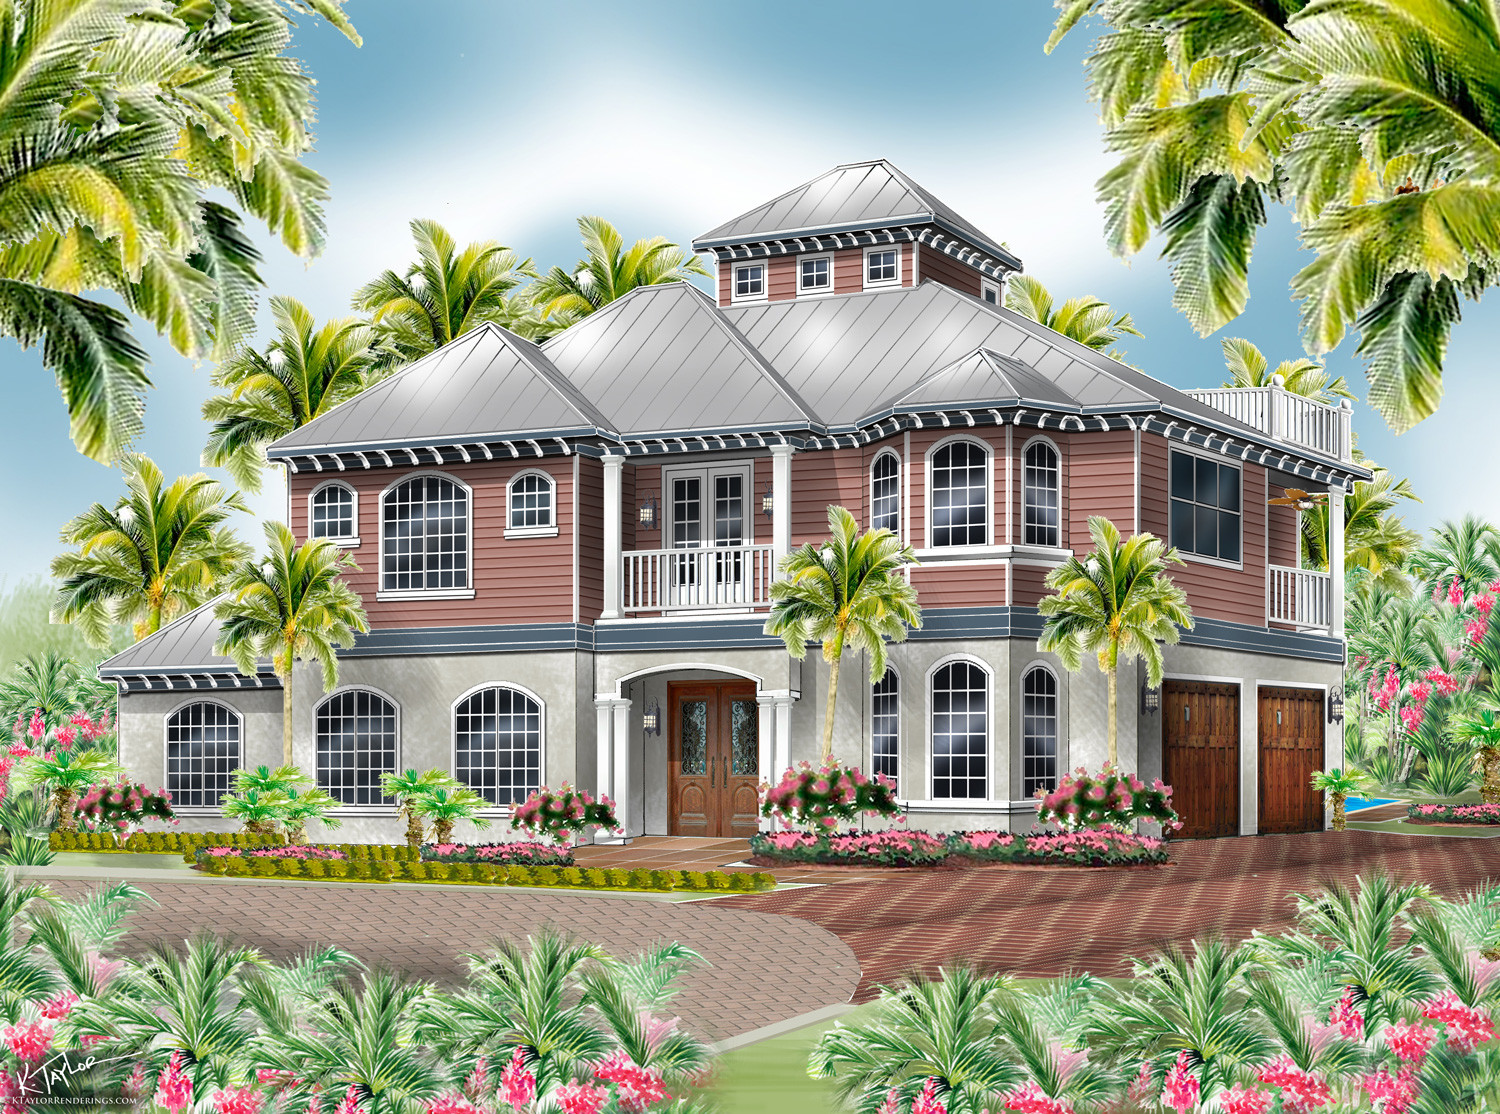 The Hemingway home rendering